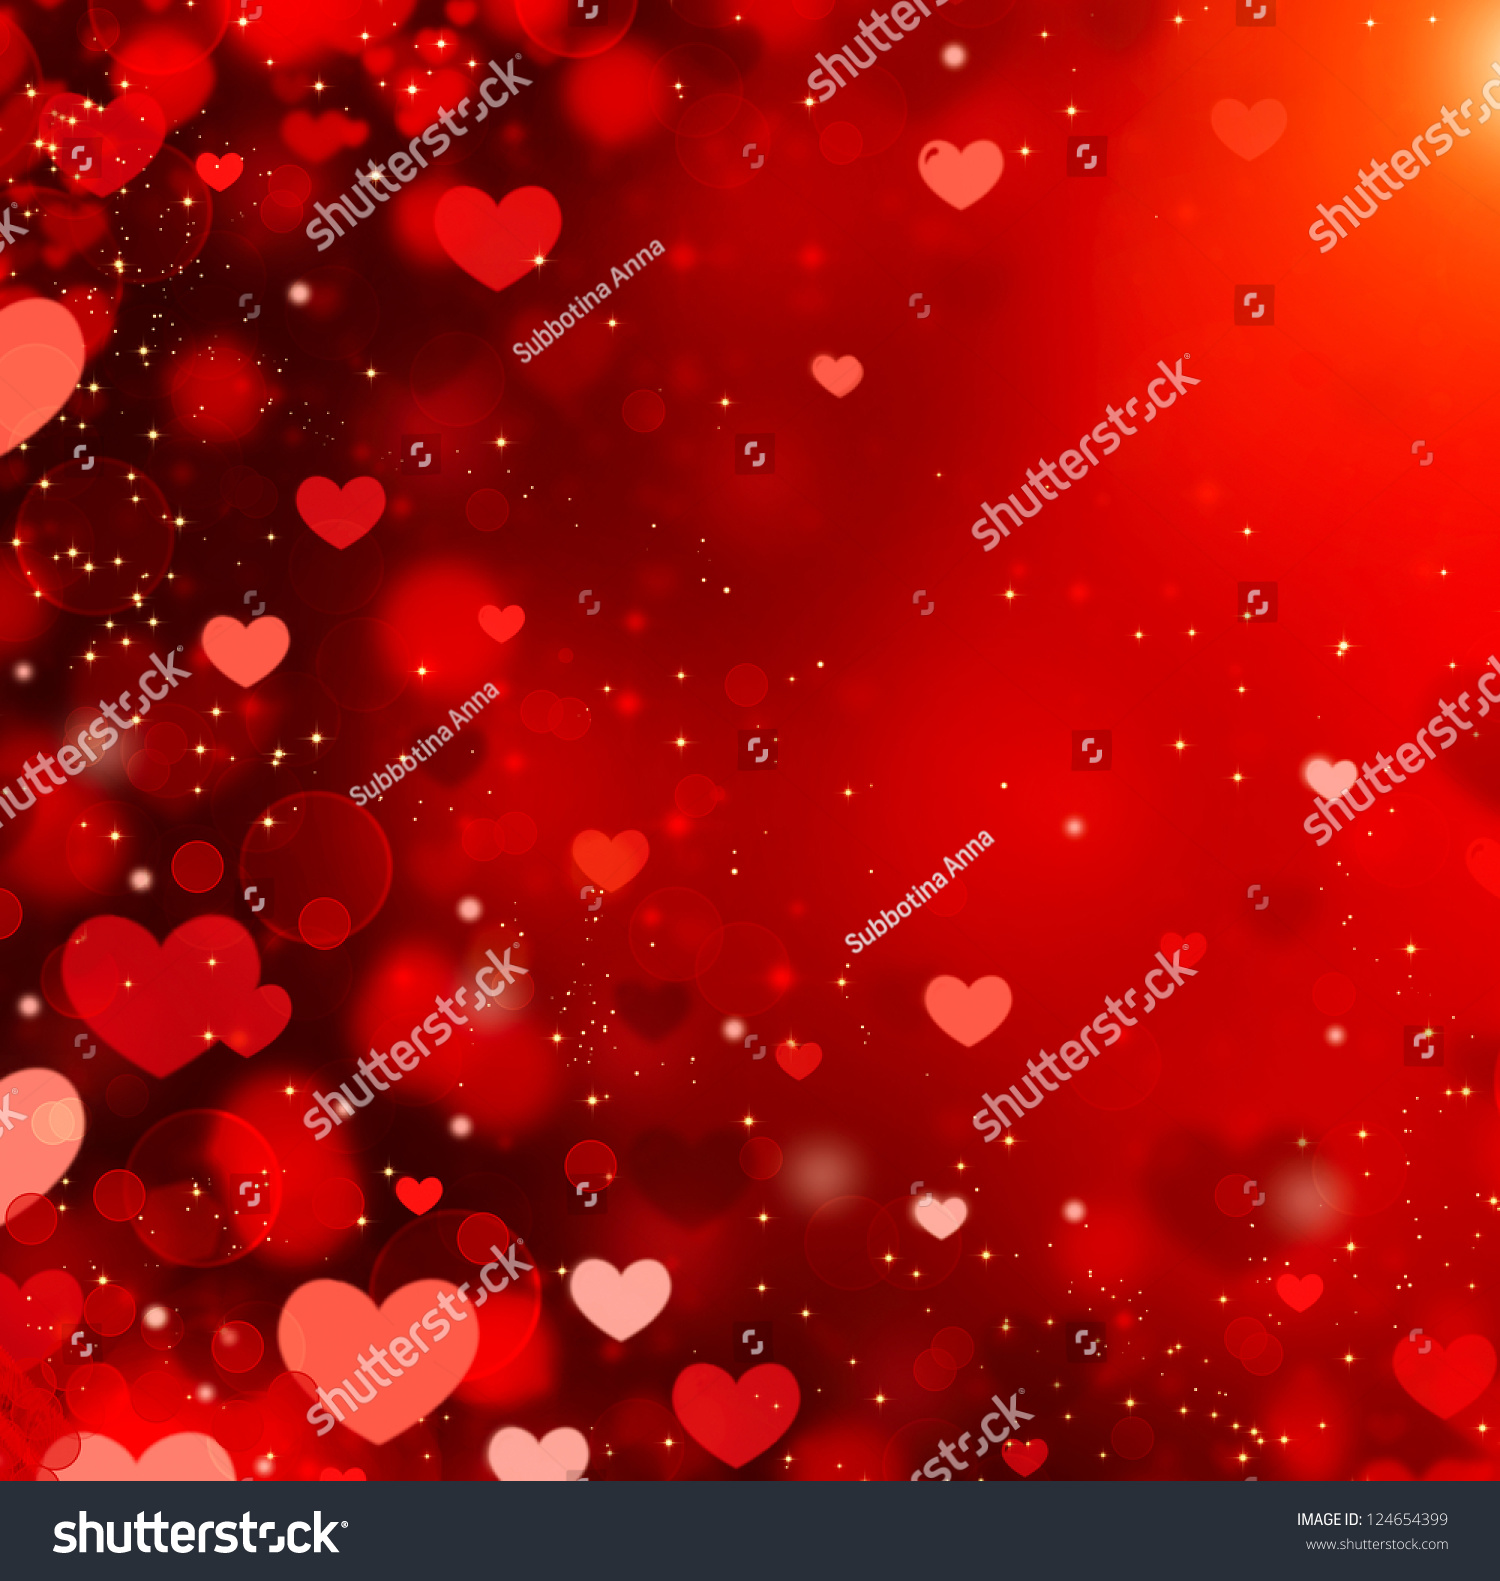 valentine hearts abstract red background stvalentines stock